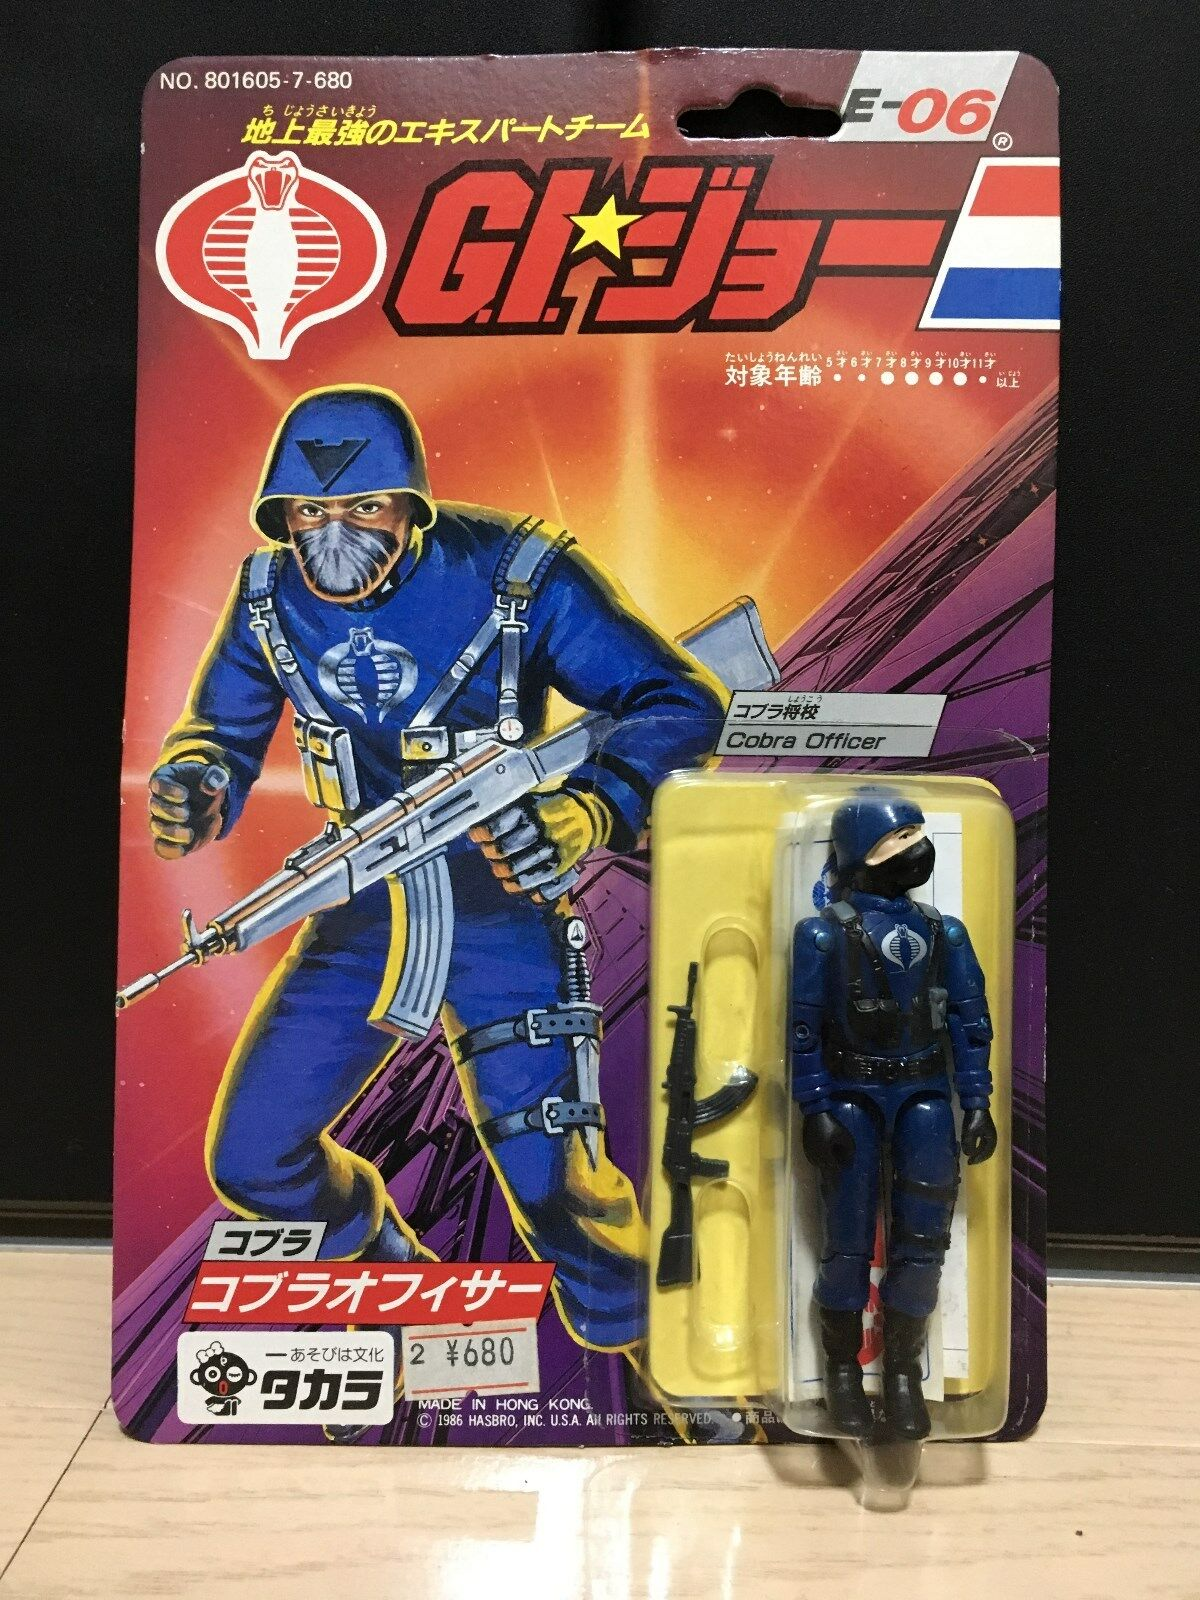 GI JOE TAKARA Vintage 1986 HASBRO Cobra Officer E-06